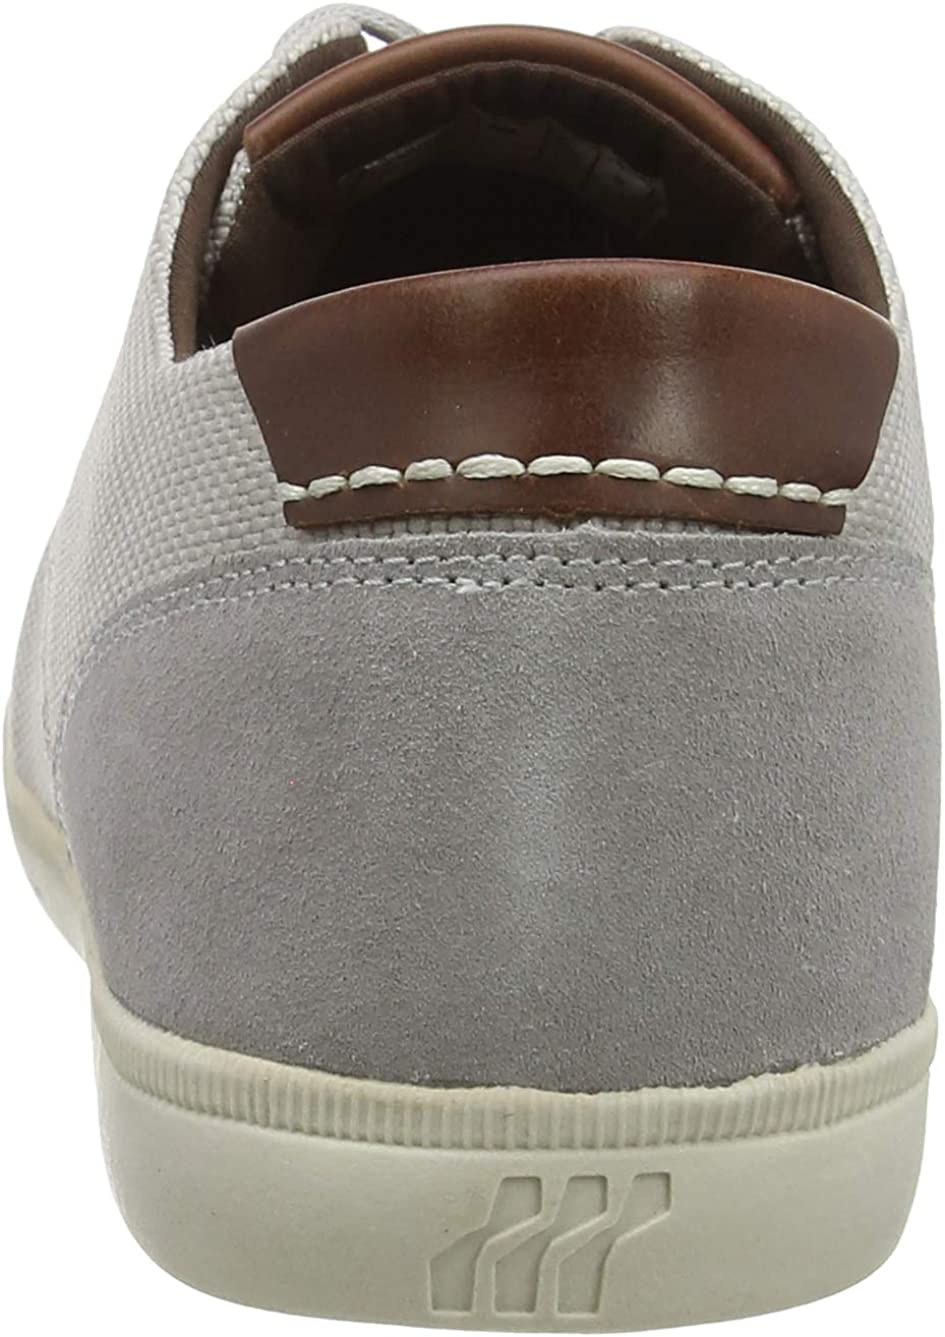 Fresh Box Boxfresh Mens Derby Lace-Up